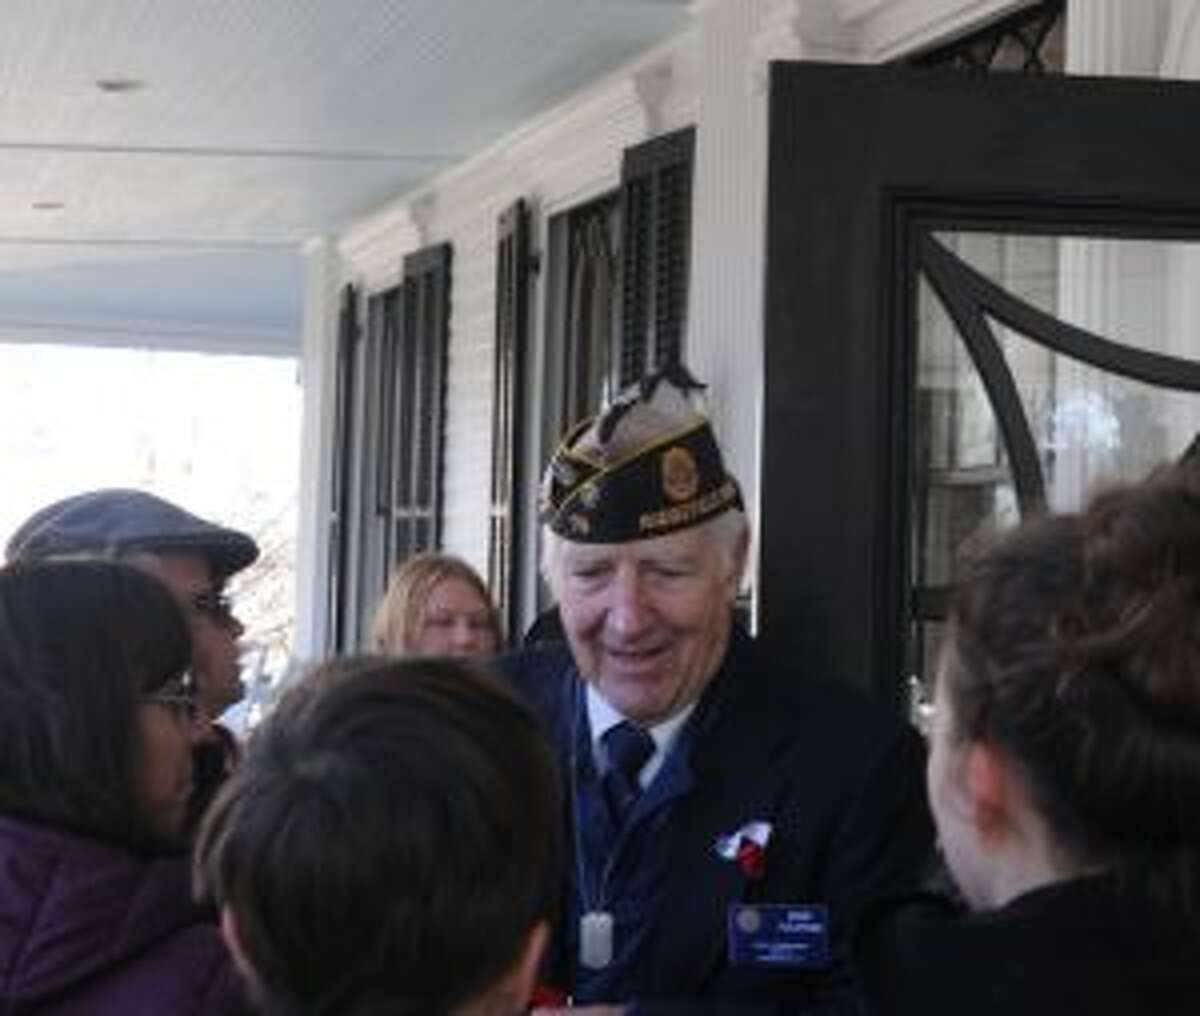 Keynote speaker bob Tuliipani was congratulated by friends after his speech at Veterans Day ceremonies.